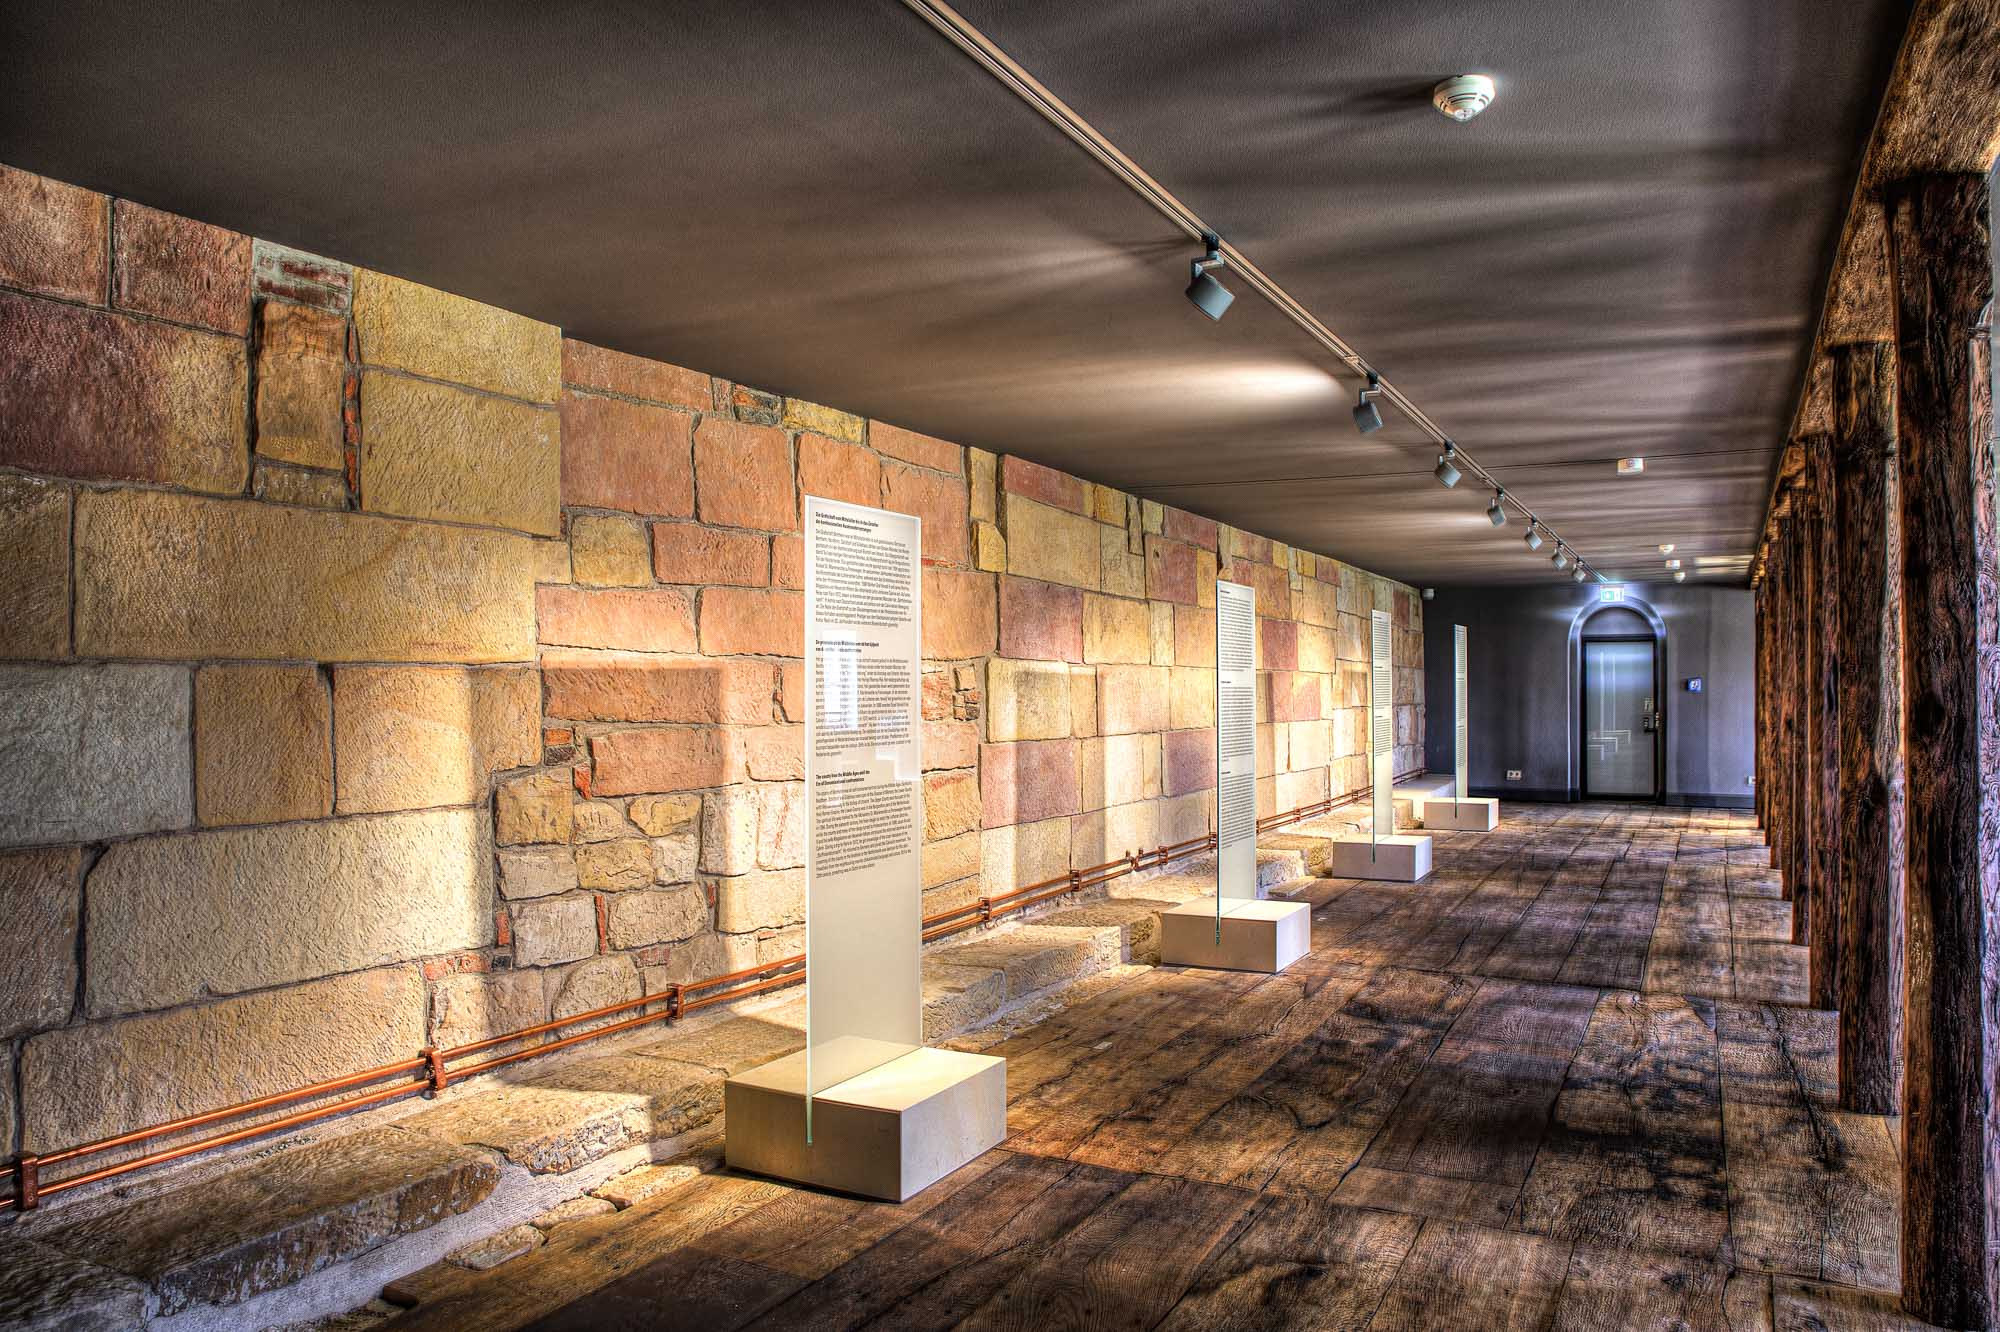 Bentheim sandstone explained at the museum